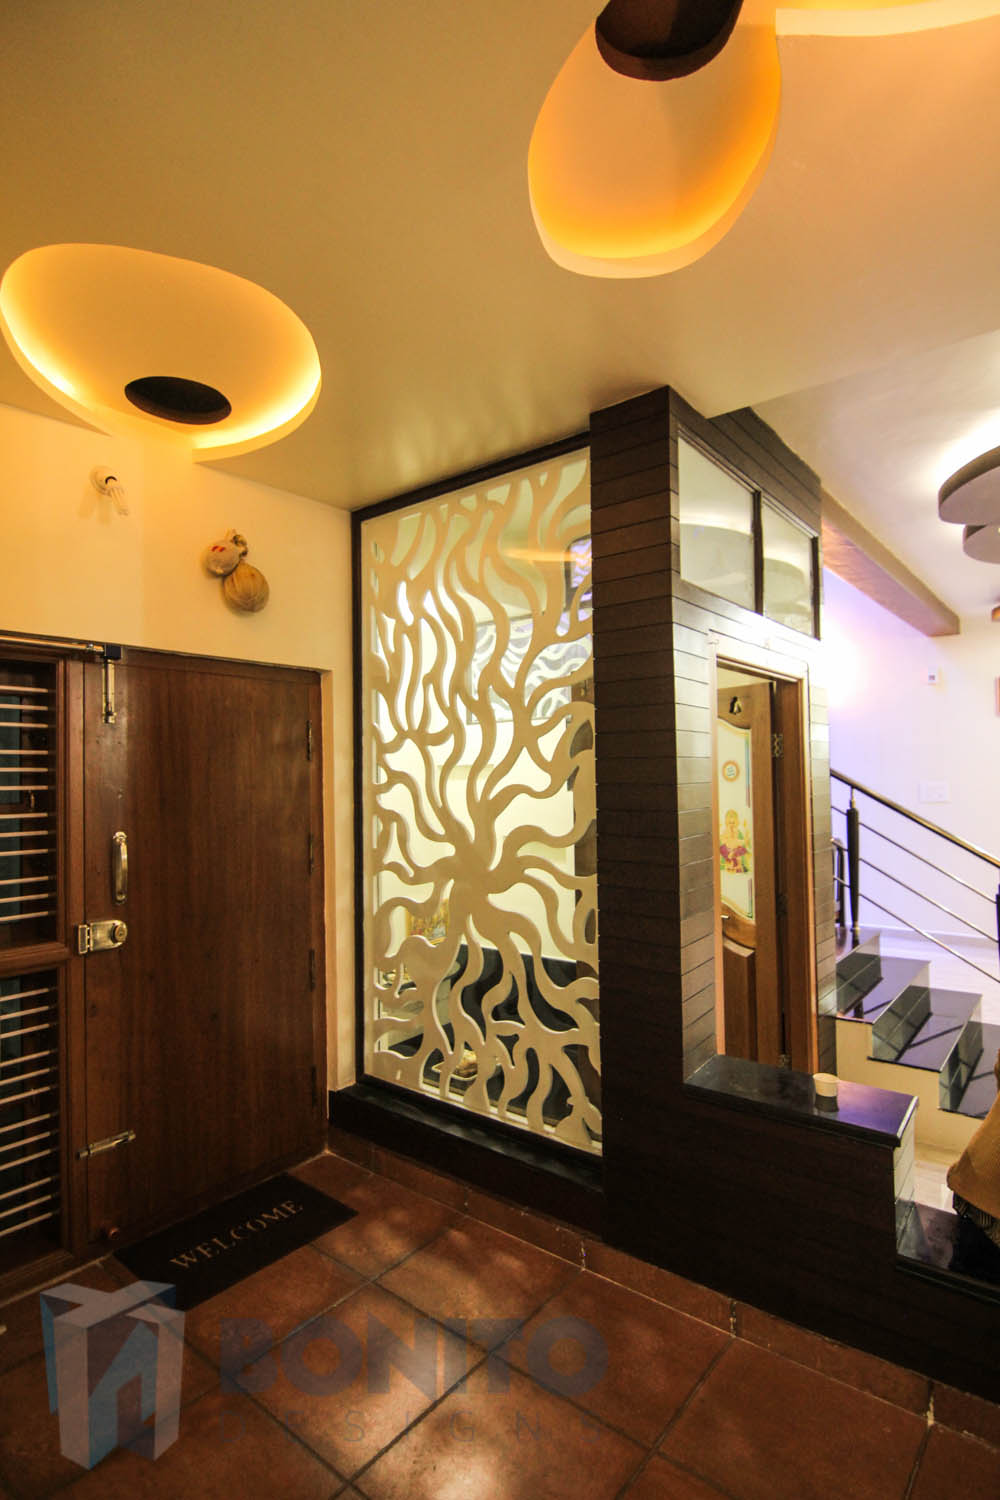 Location Idea Puja Room In Living Near Entrance